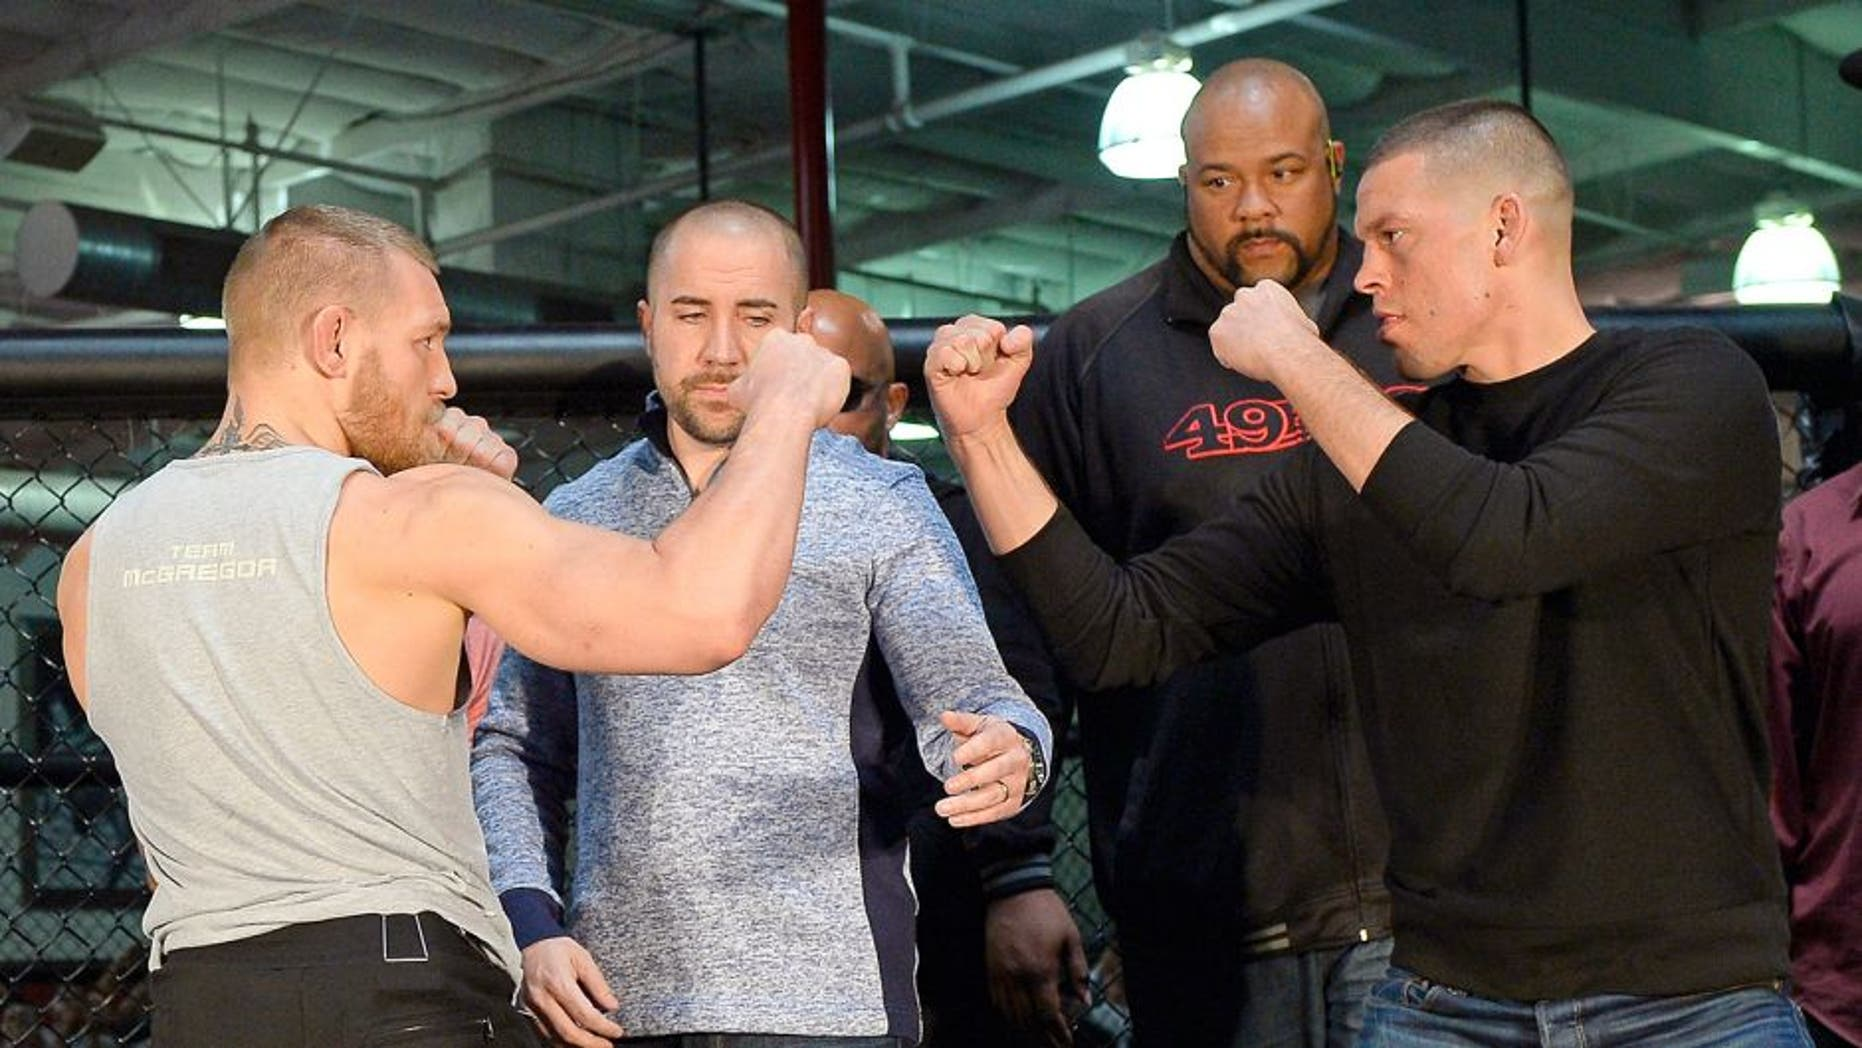 TORRANCE, CA - FEBRUARY 24: UFC featherweight champion Conor McGregor (L) and lightweight contender Nate Diaz (R) are held apart by Dave Sholler (2nd L), UFC vice president of public relations, after a news conference at UFC Gym February 24, 2016, in Torrance, California. (Photo by Kevork Djansezian/Getty Images)